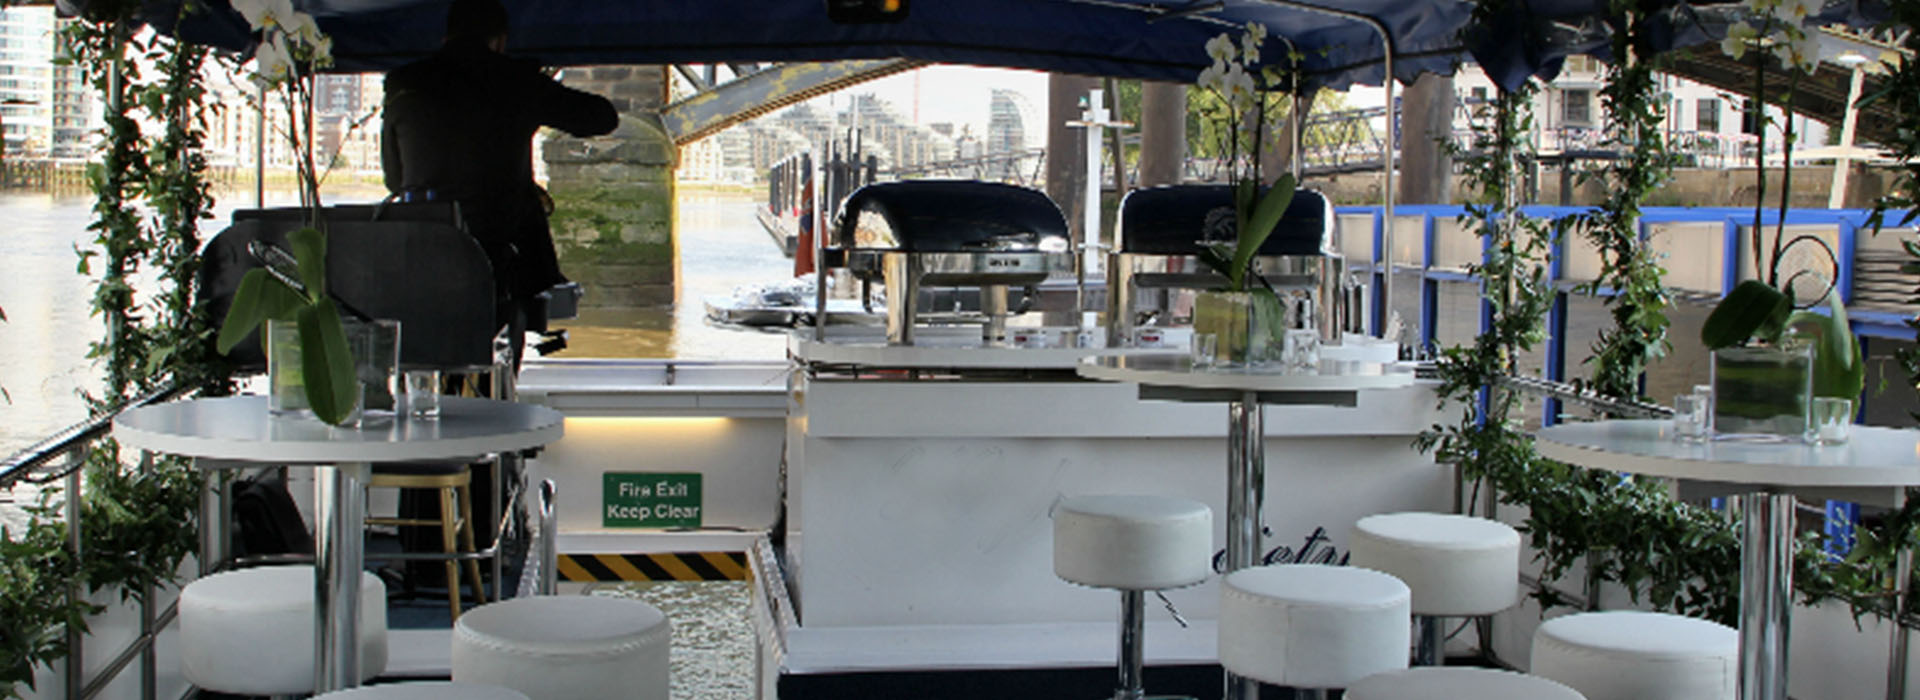 Thames Virtue Boat - Private Boat Hire on the River Thames in London